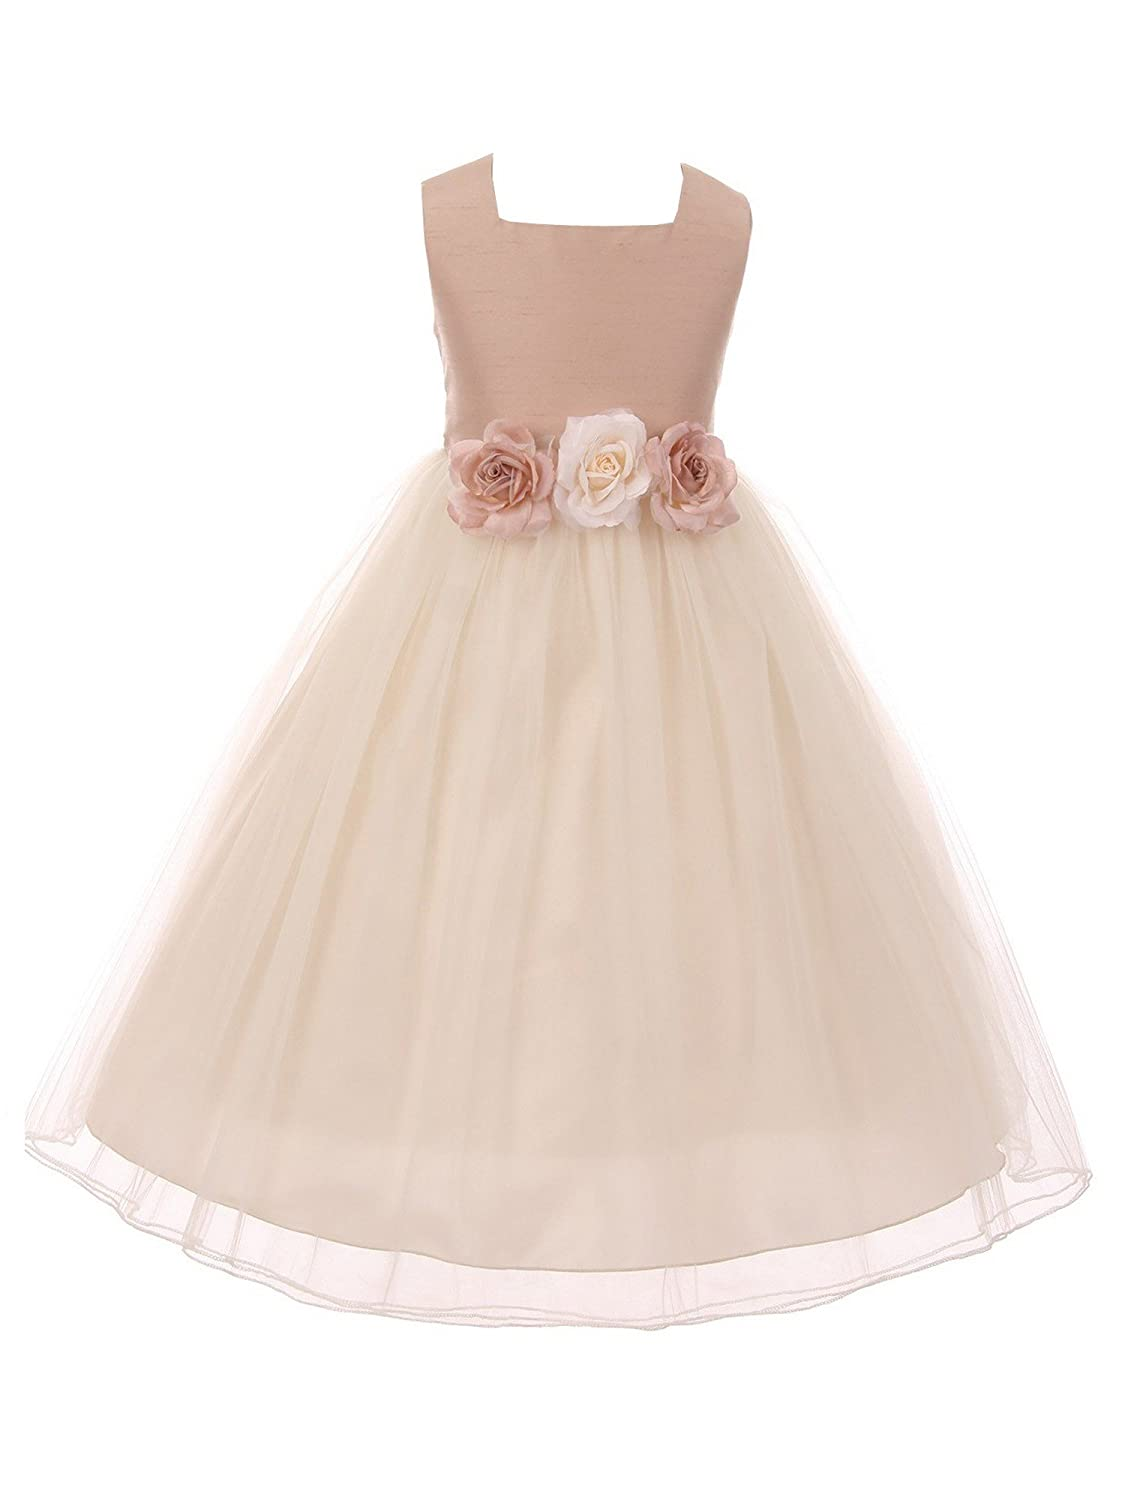 Kids Dream Big Girls Vintage Rose Satin Tulle Junior Bridesmaid Dress 8-12